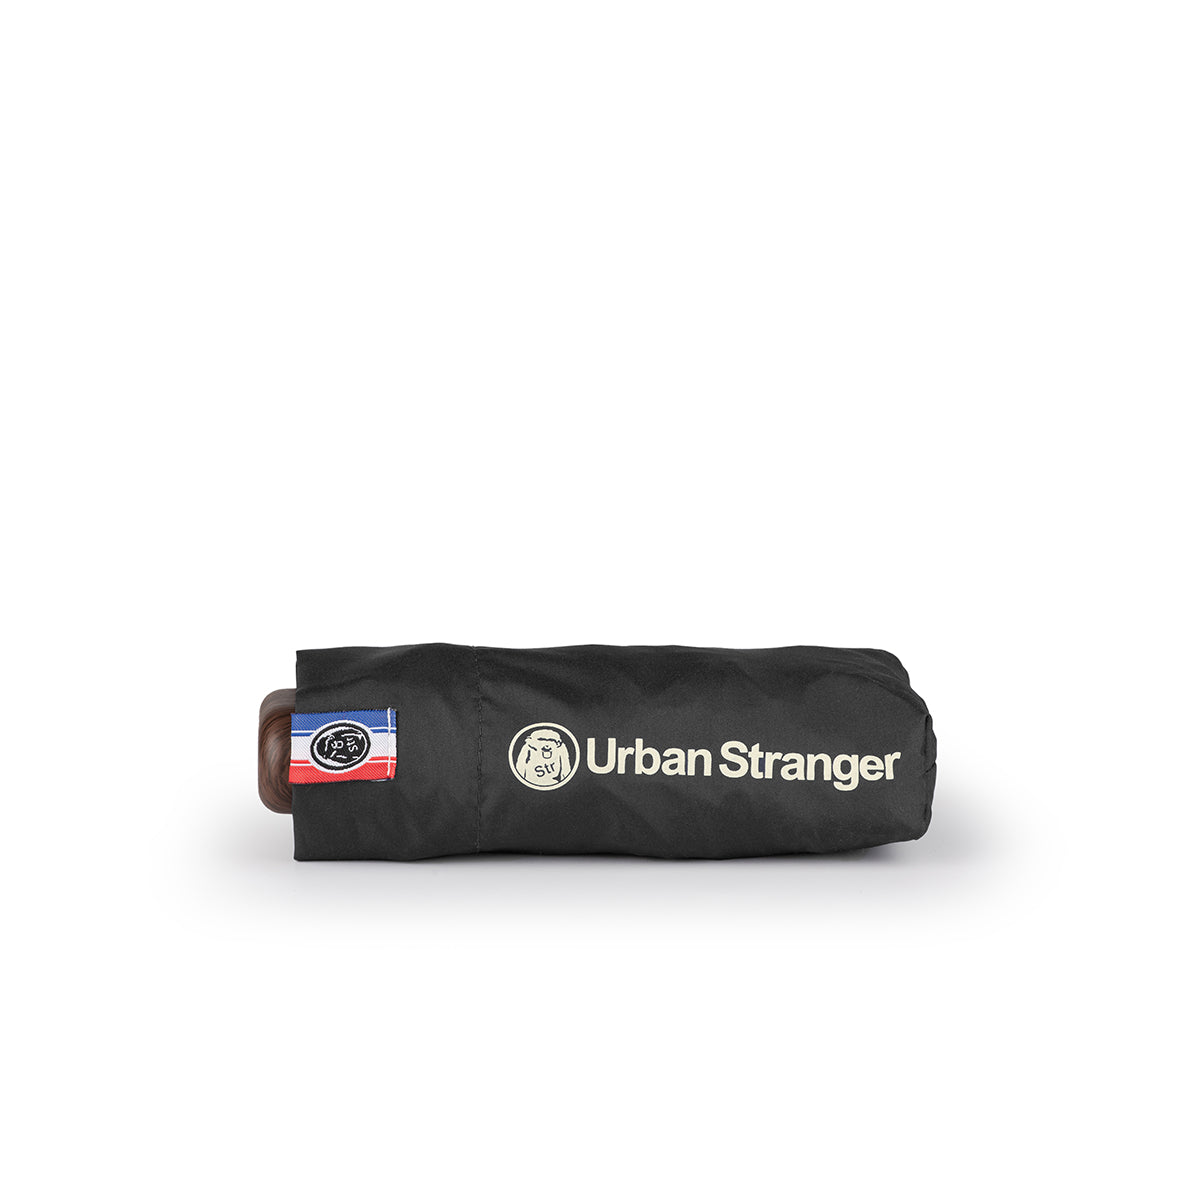 Urban Stranger 5-Fold Mini Umbrella